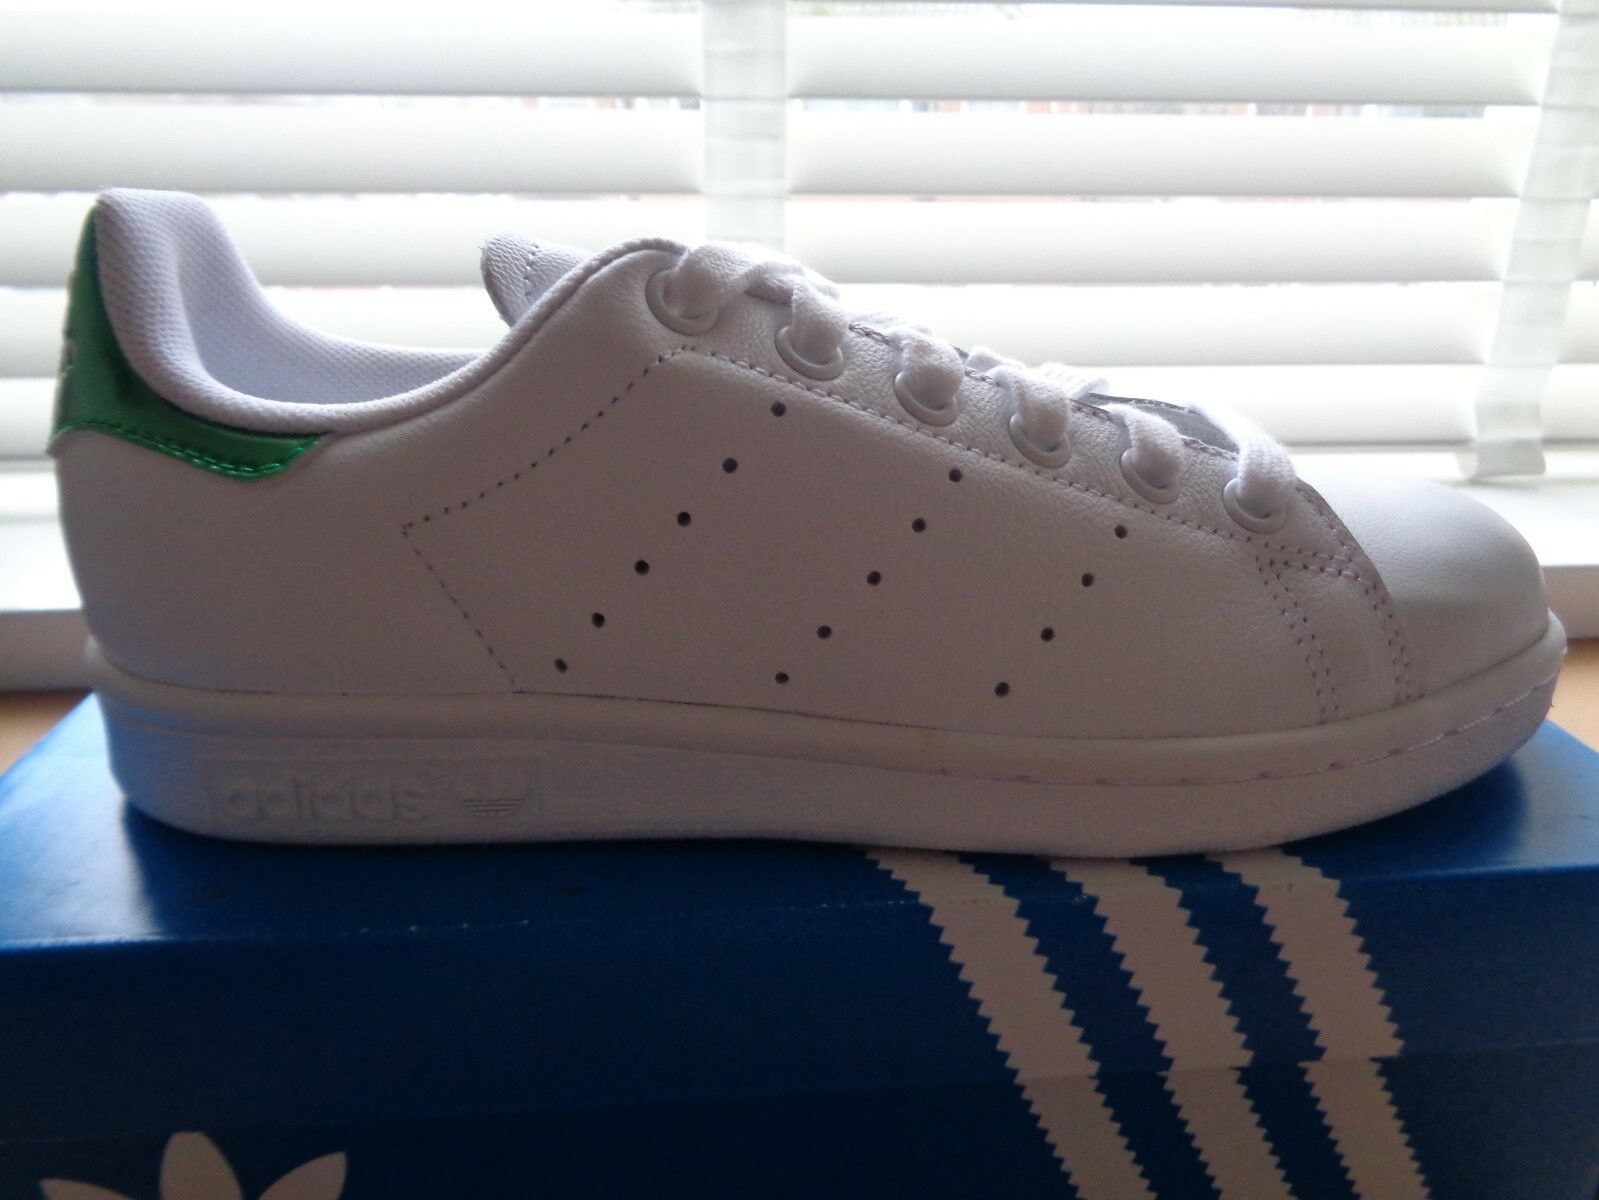 Adidas Stan Smith W Femme trainers sneakers AQ6805 uk 3.5 eu 36 us 5 NEW IN BOX